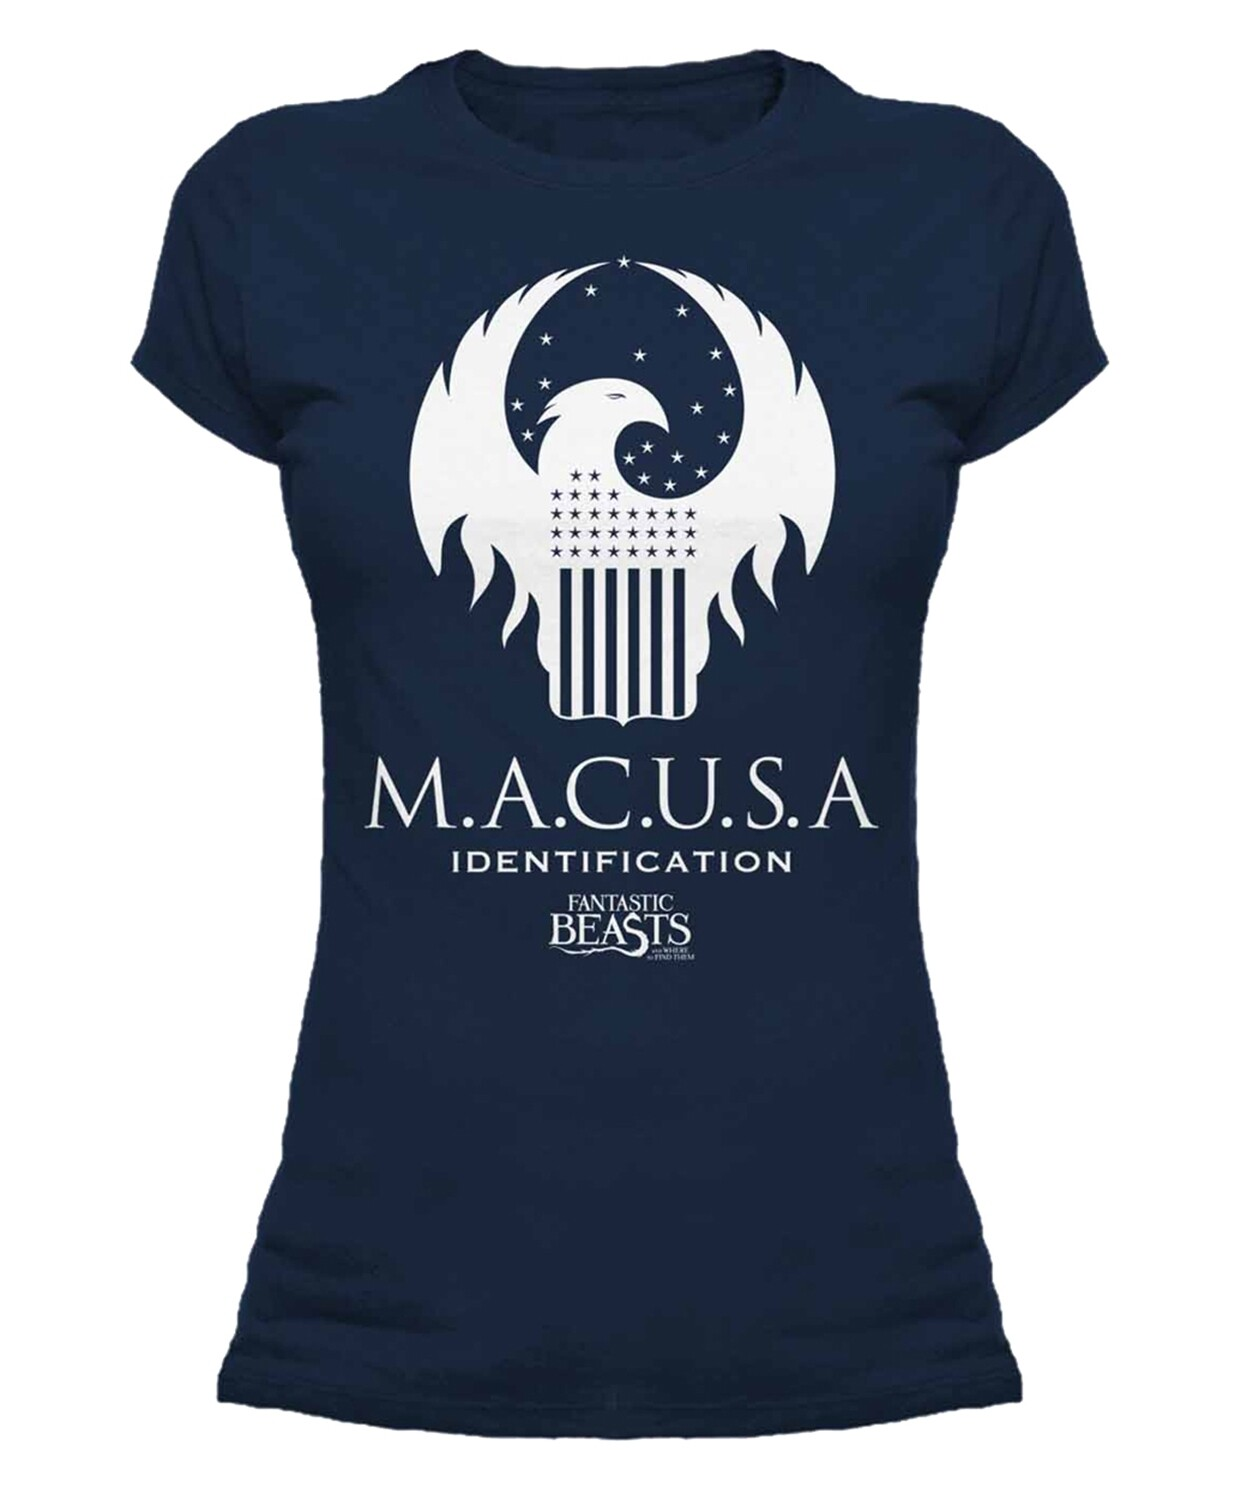 Female Fantastic Beasts 'Macusa' Fitted T-Shirt